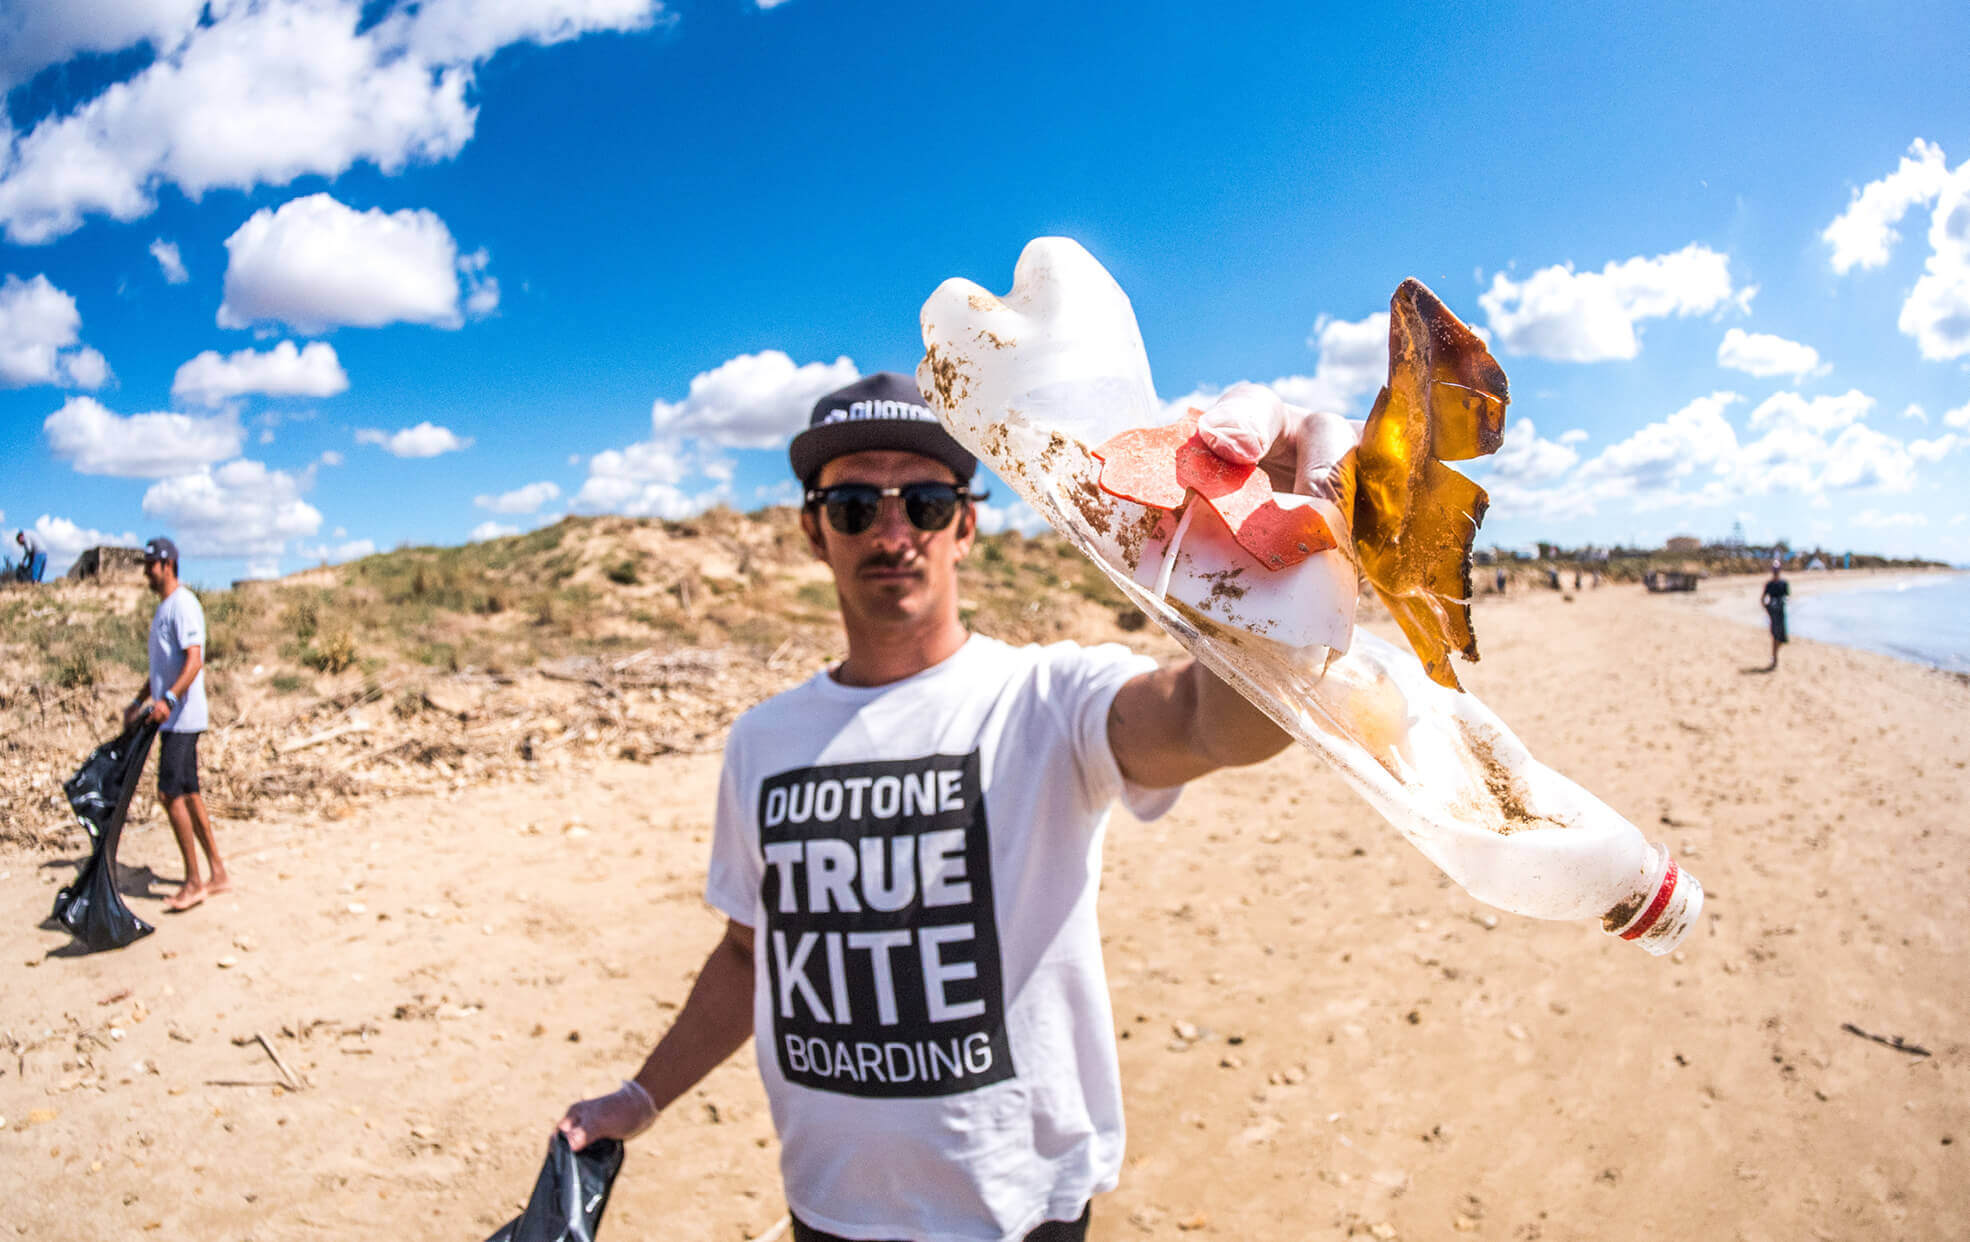 Duotone Kiteboarding Clean Beach Day Sicily Italy Gianmaria